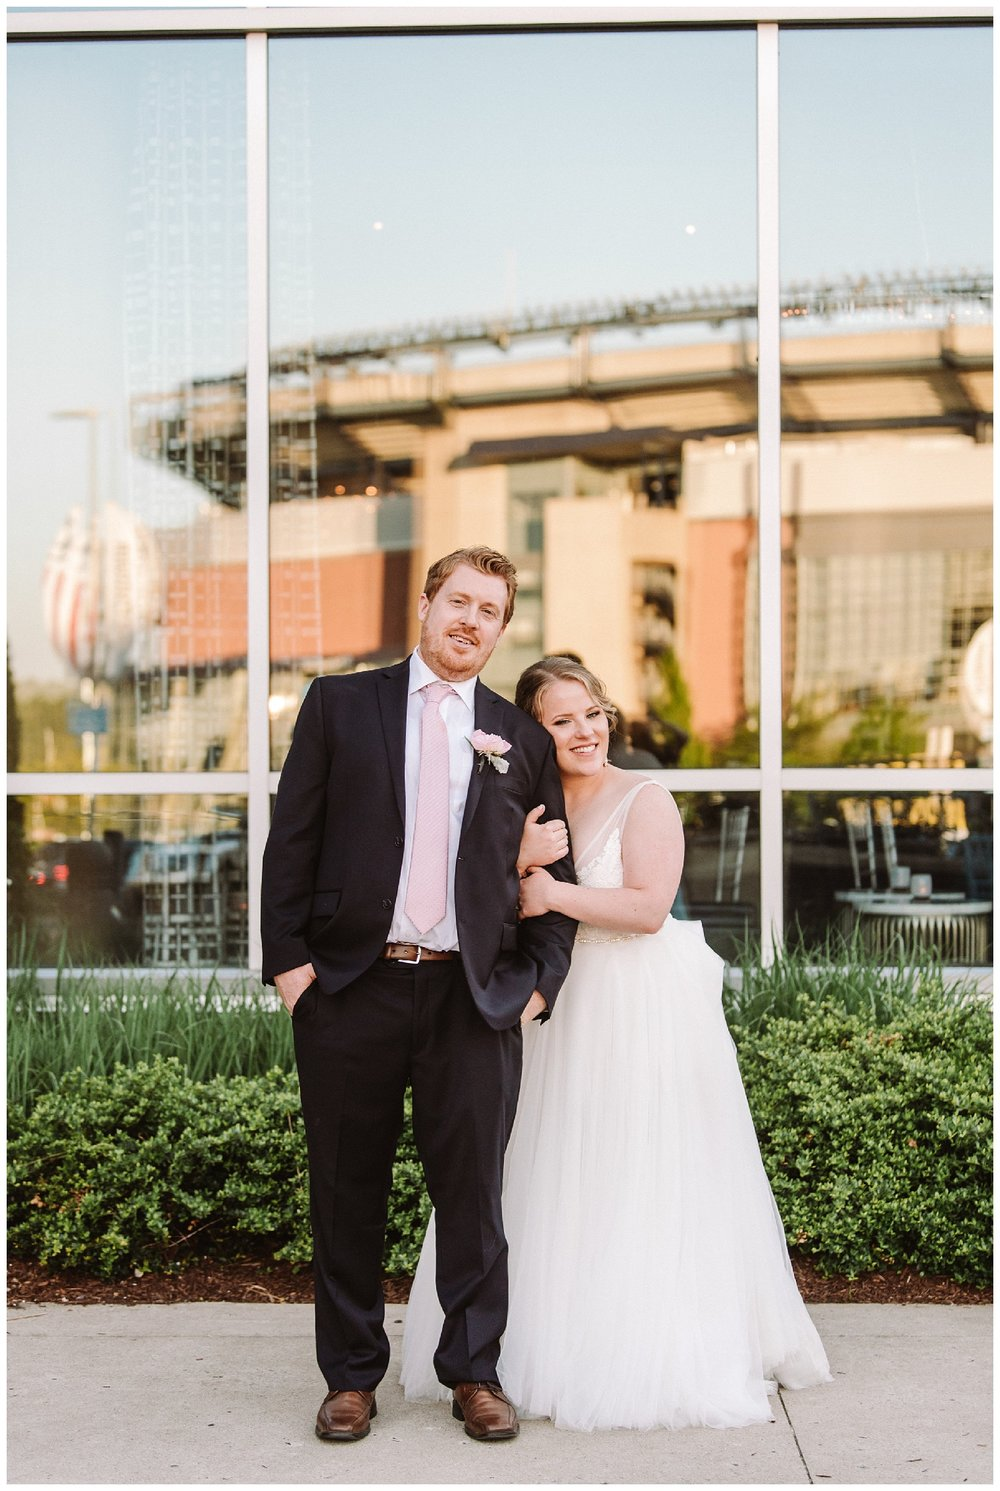 Renaissance Hotel Gillette Stadium Wedding Photographer100.jpg